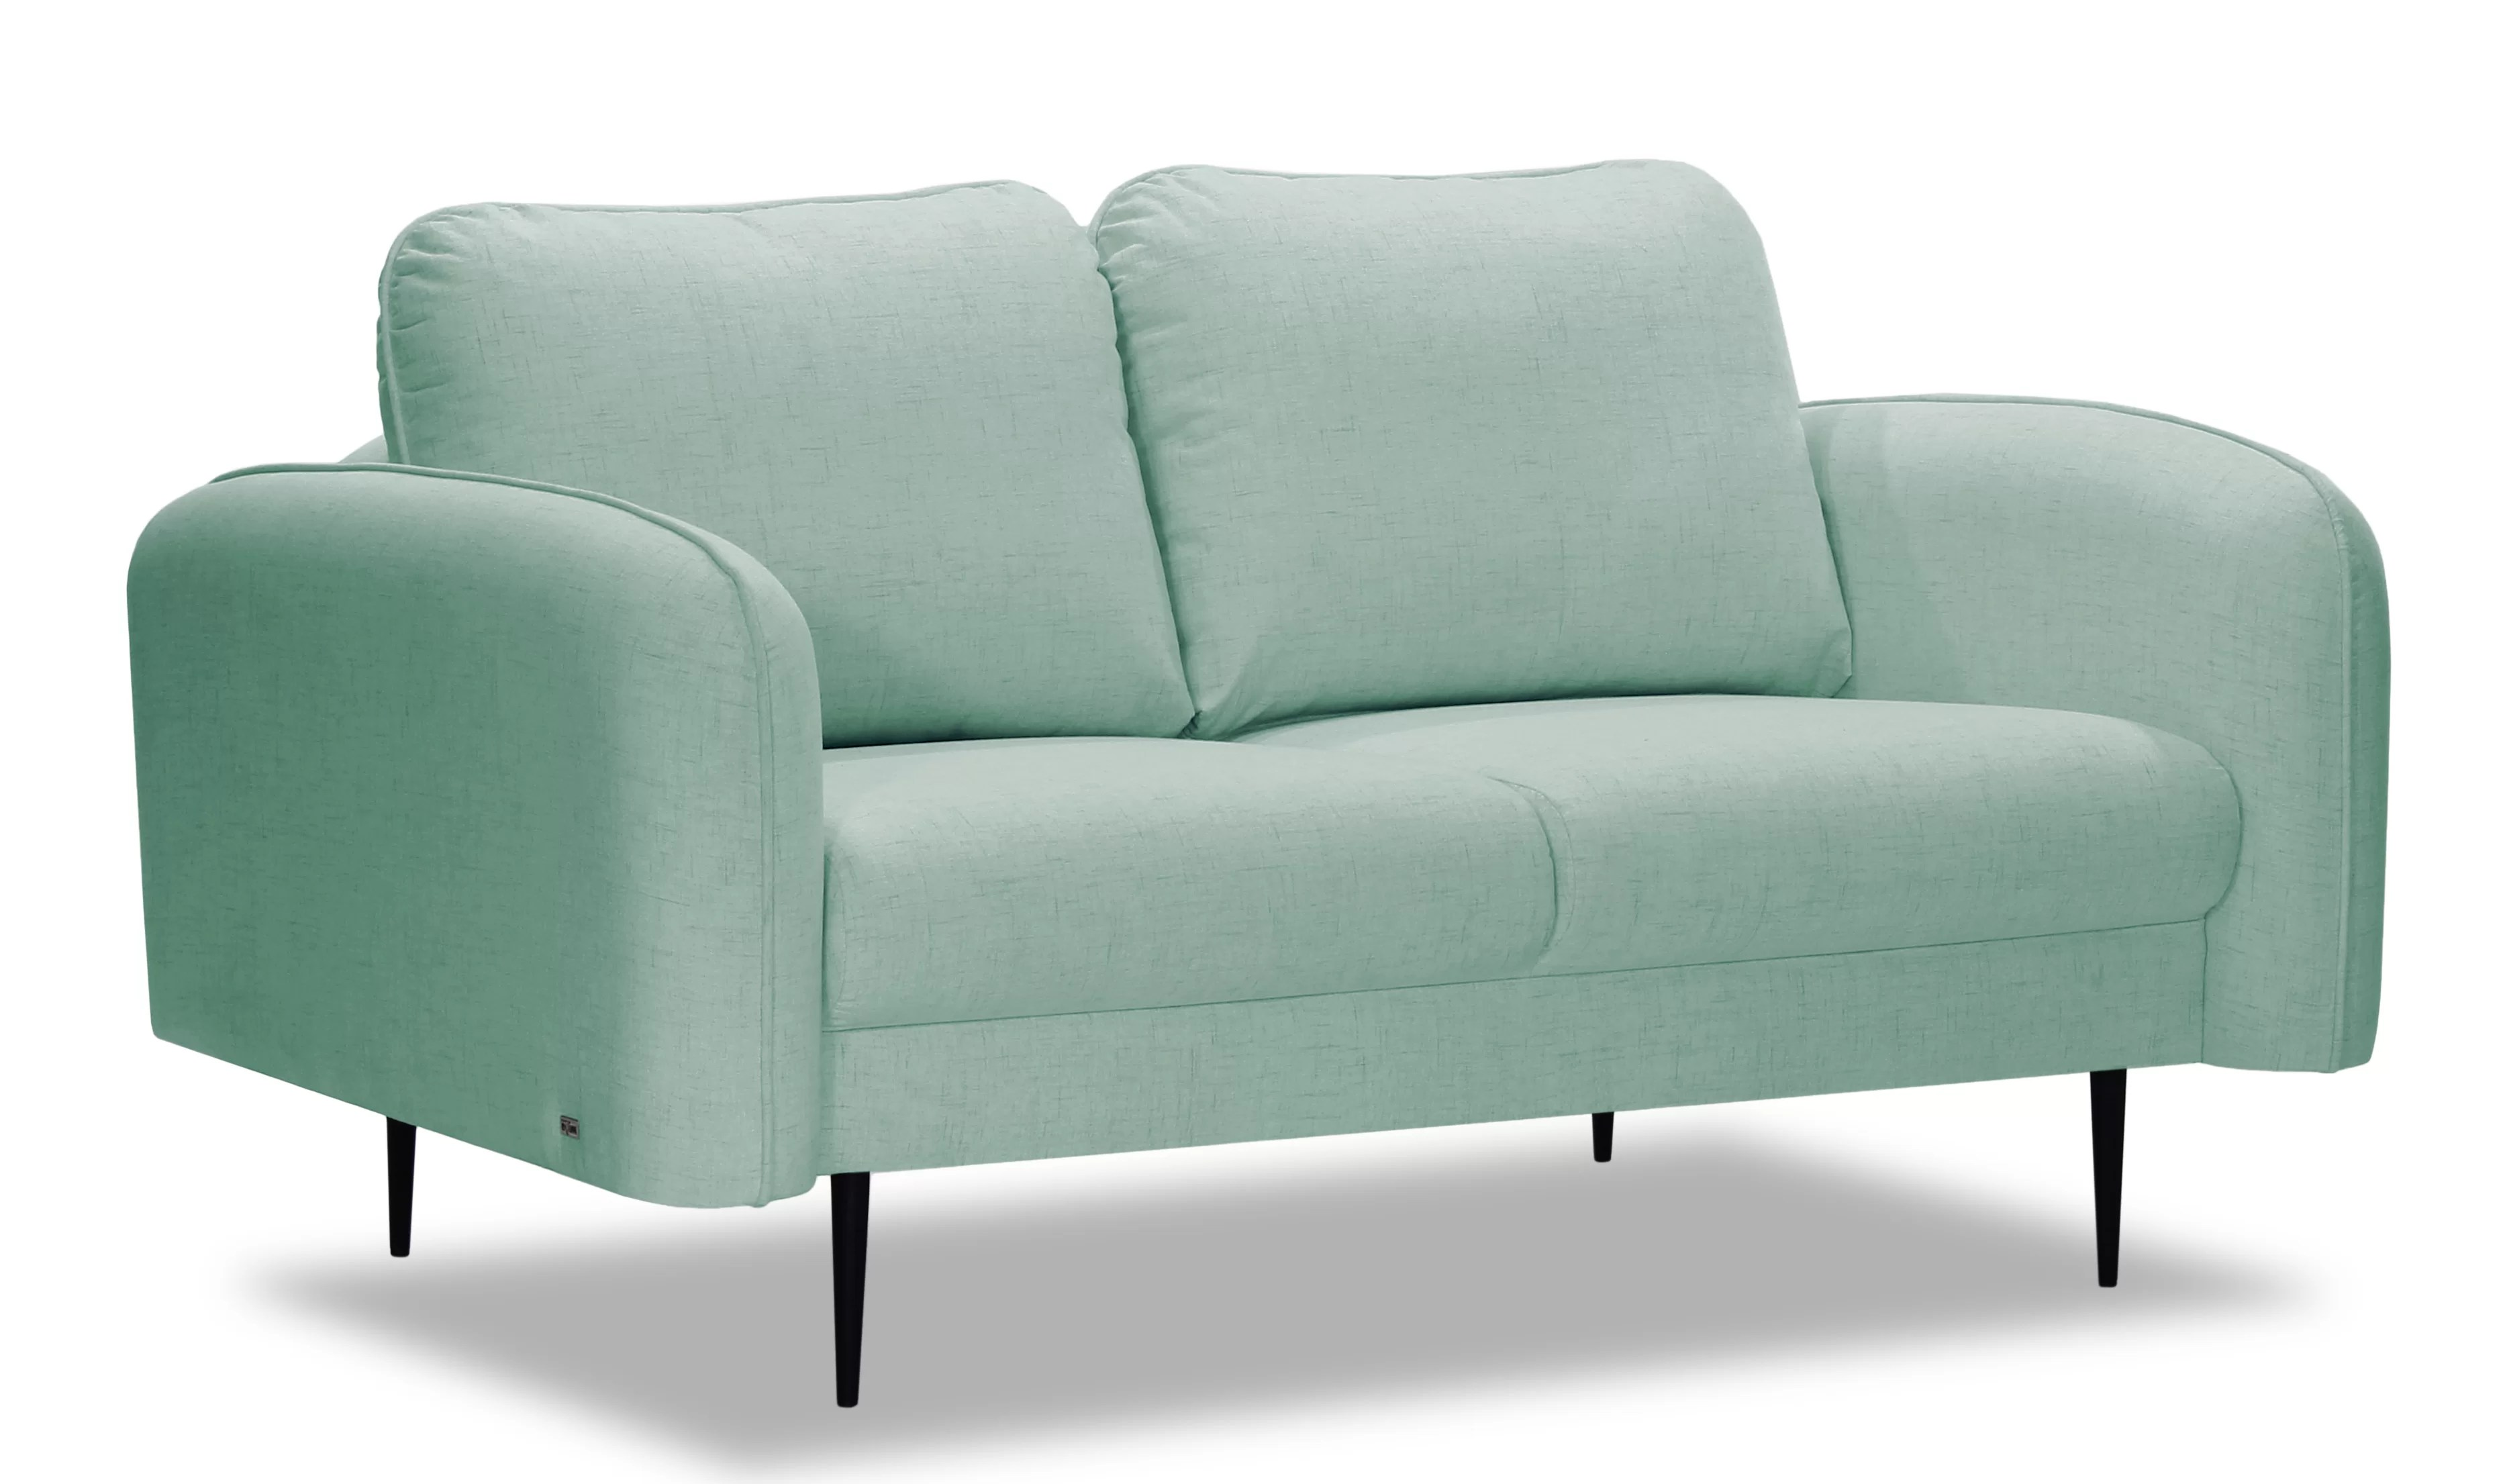 Zweier Sofa Enteiran